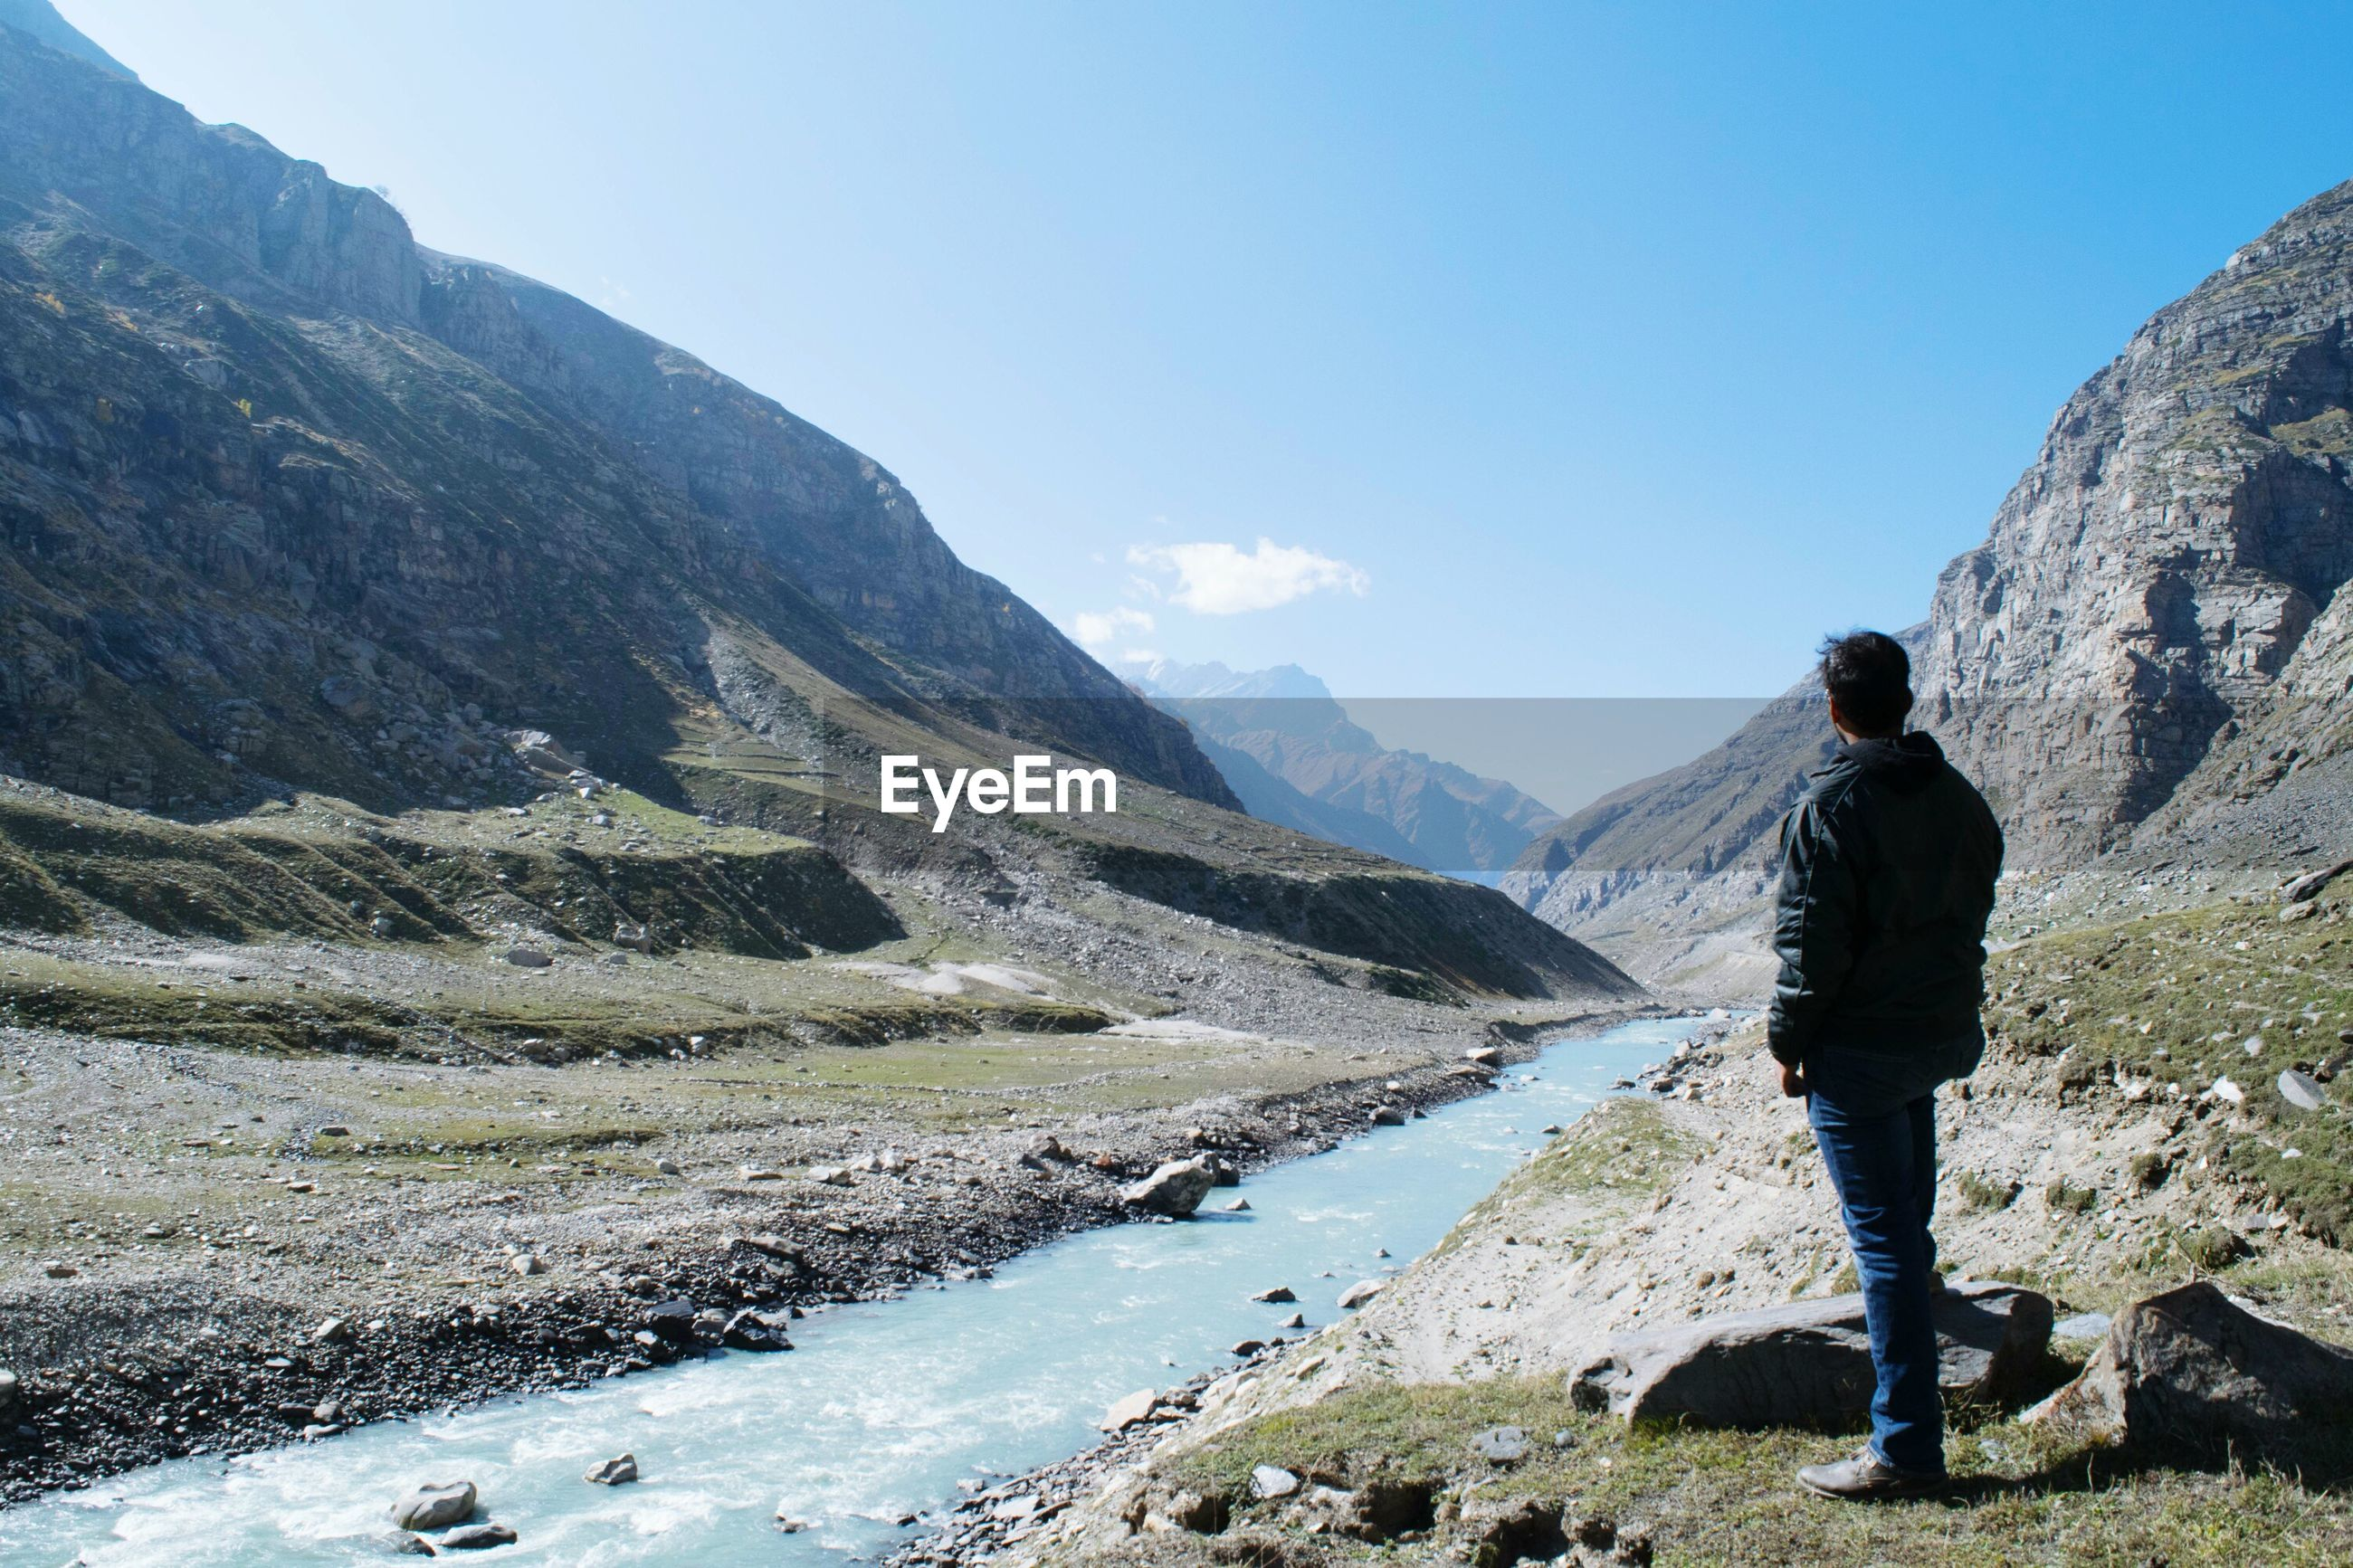 Man standing by river against mountain range